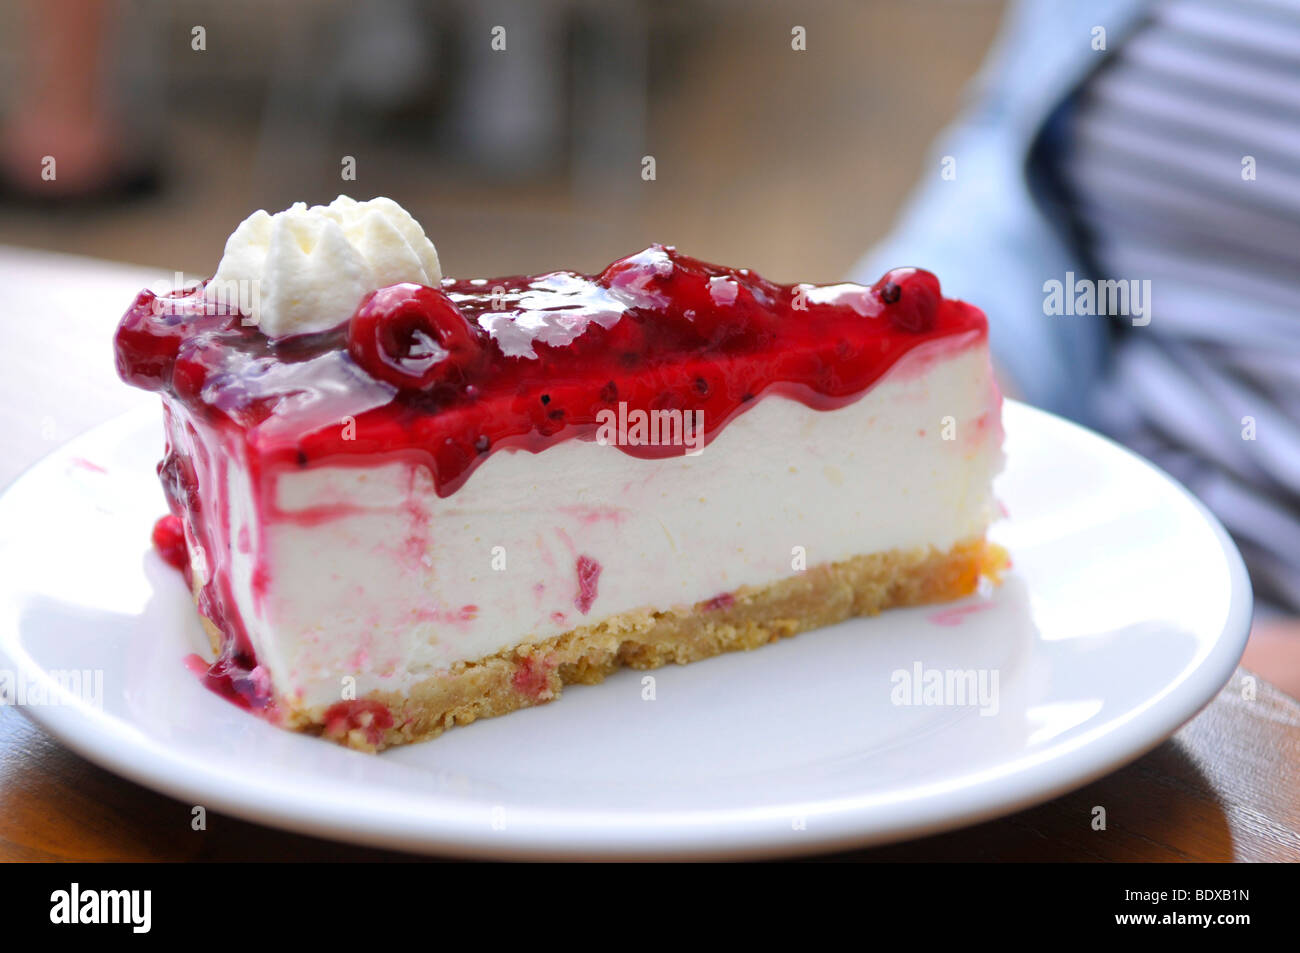 Piece of cake in the Cafe Krog, film location for the ZDF-series 'Der Landarzt' 'The Country Doctor', - Stock Image